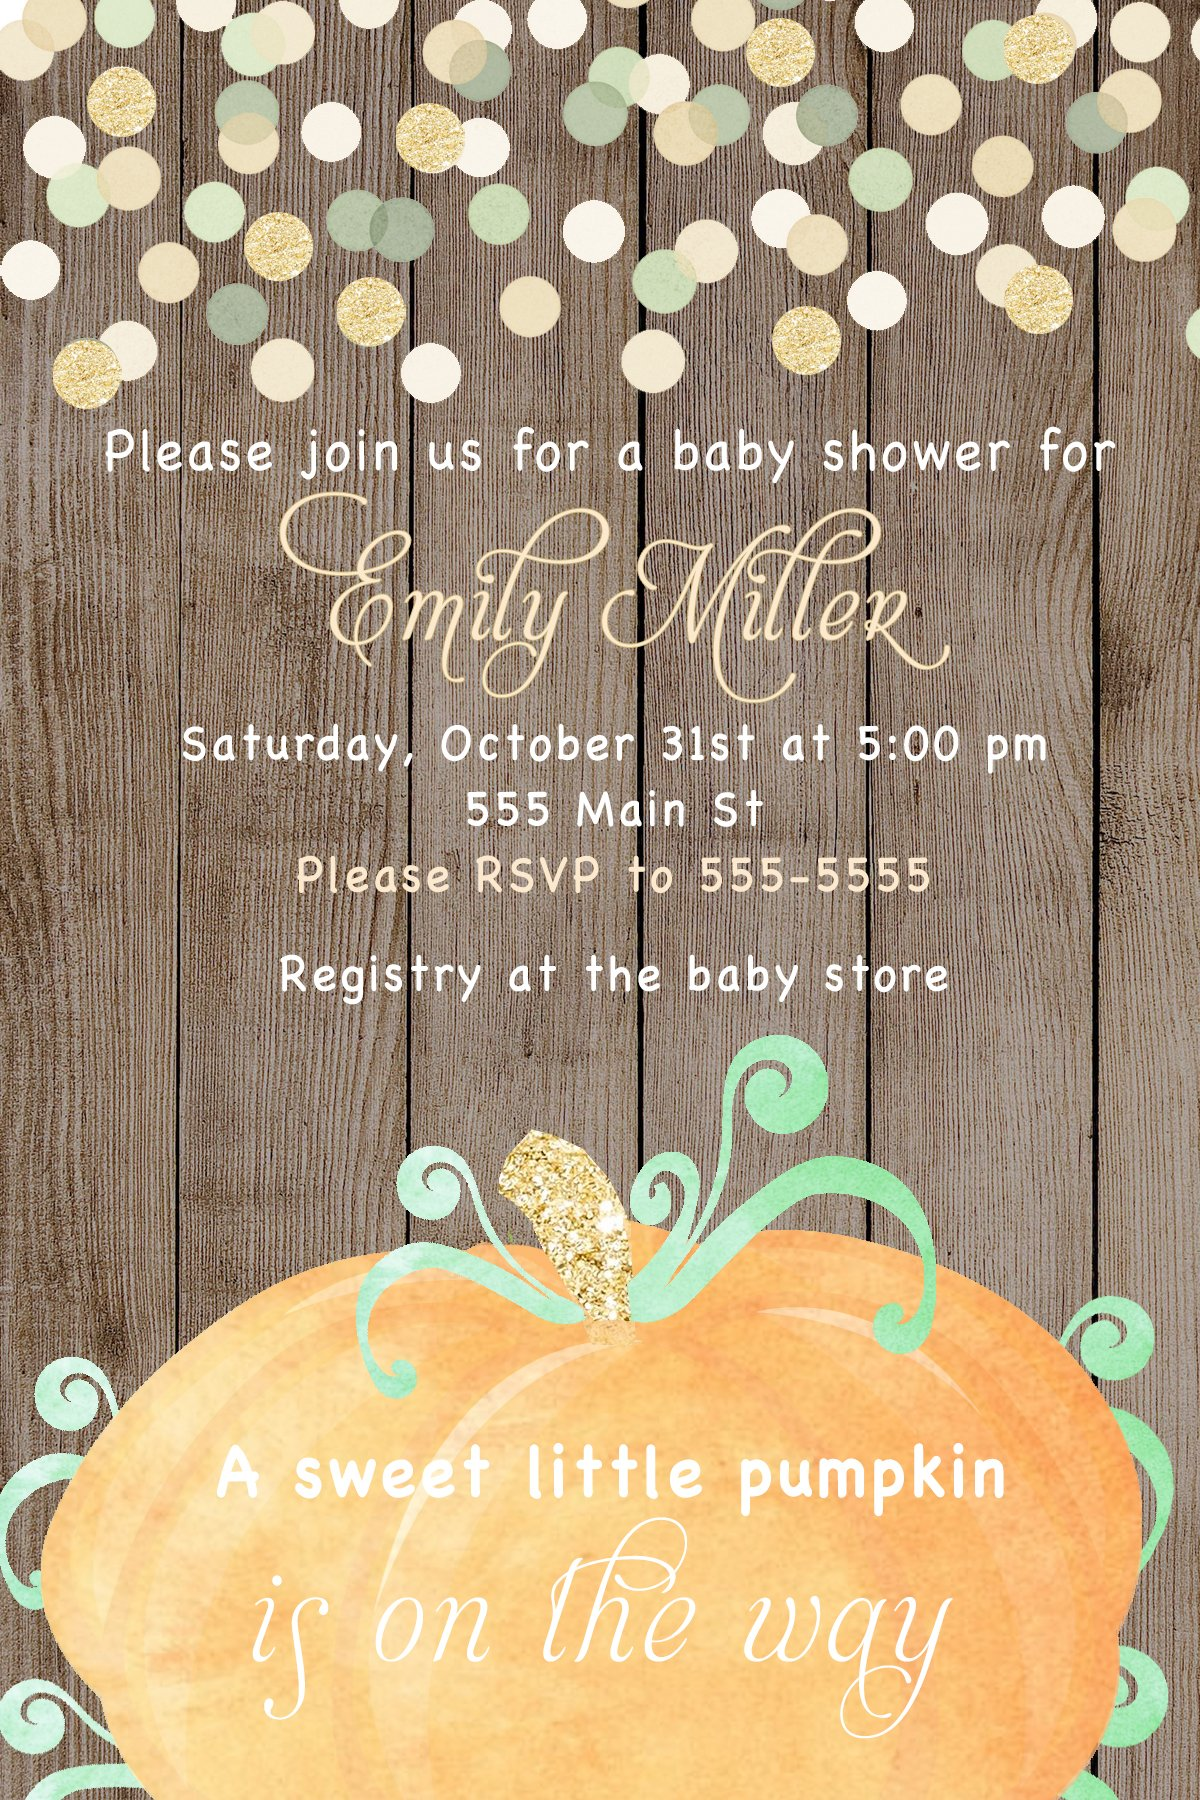 30 Invitations Pumpkin Autumn Fall Boy Unisex Baby Shower Birthday Party Personalized Cards Wood Rustic Glitter Confetti + 30 White Envelopes by Pink The Cat (Image #1)